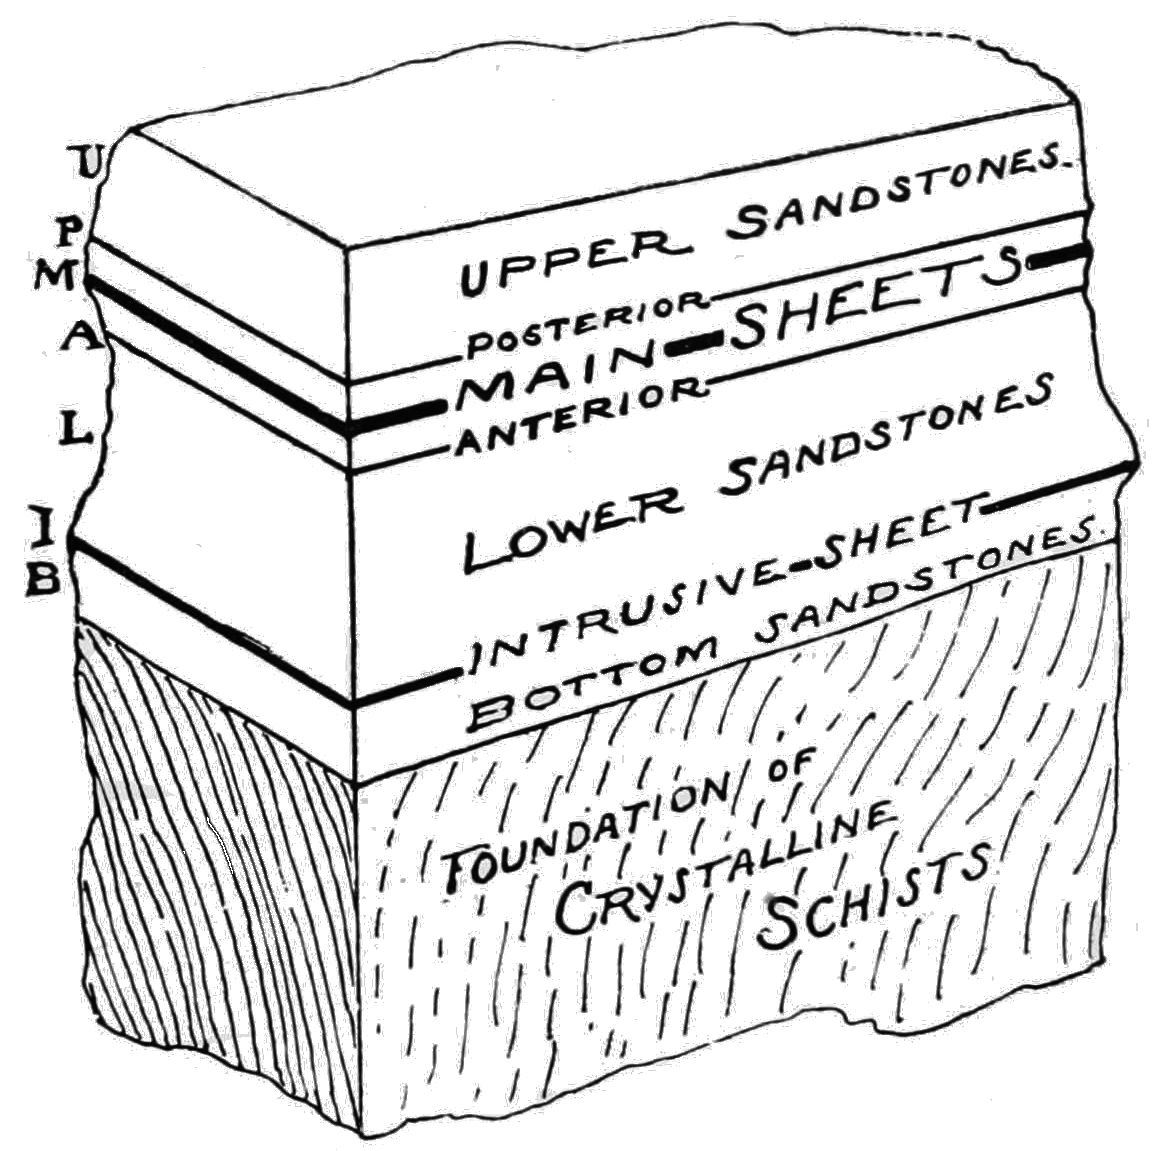 PSM V40 D241 Consequent changes in the geologic layers.jpg